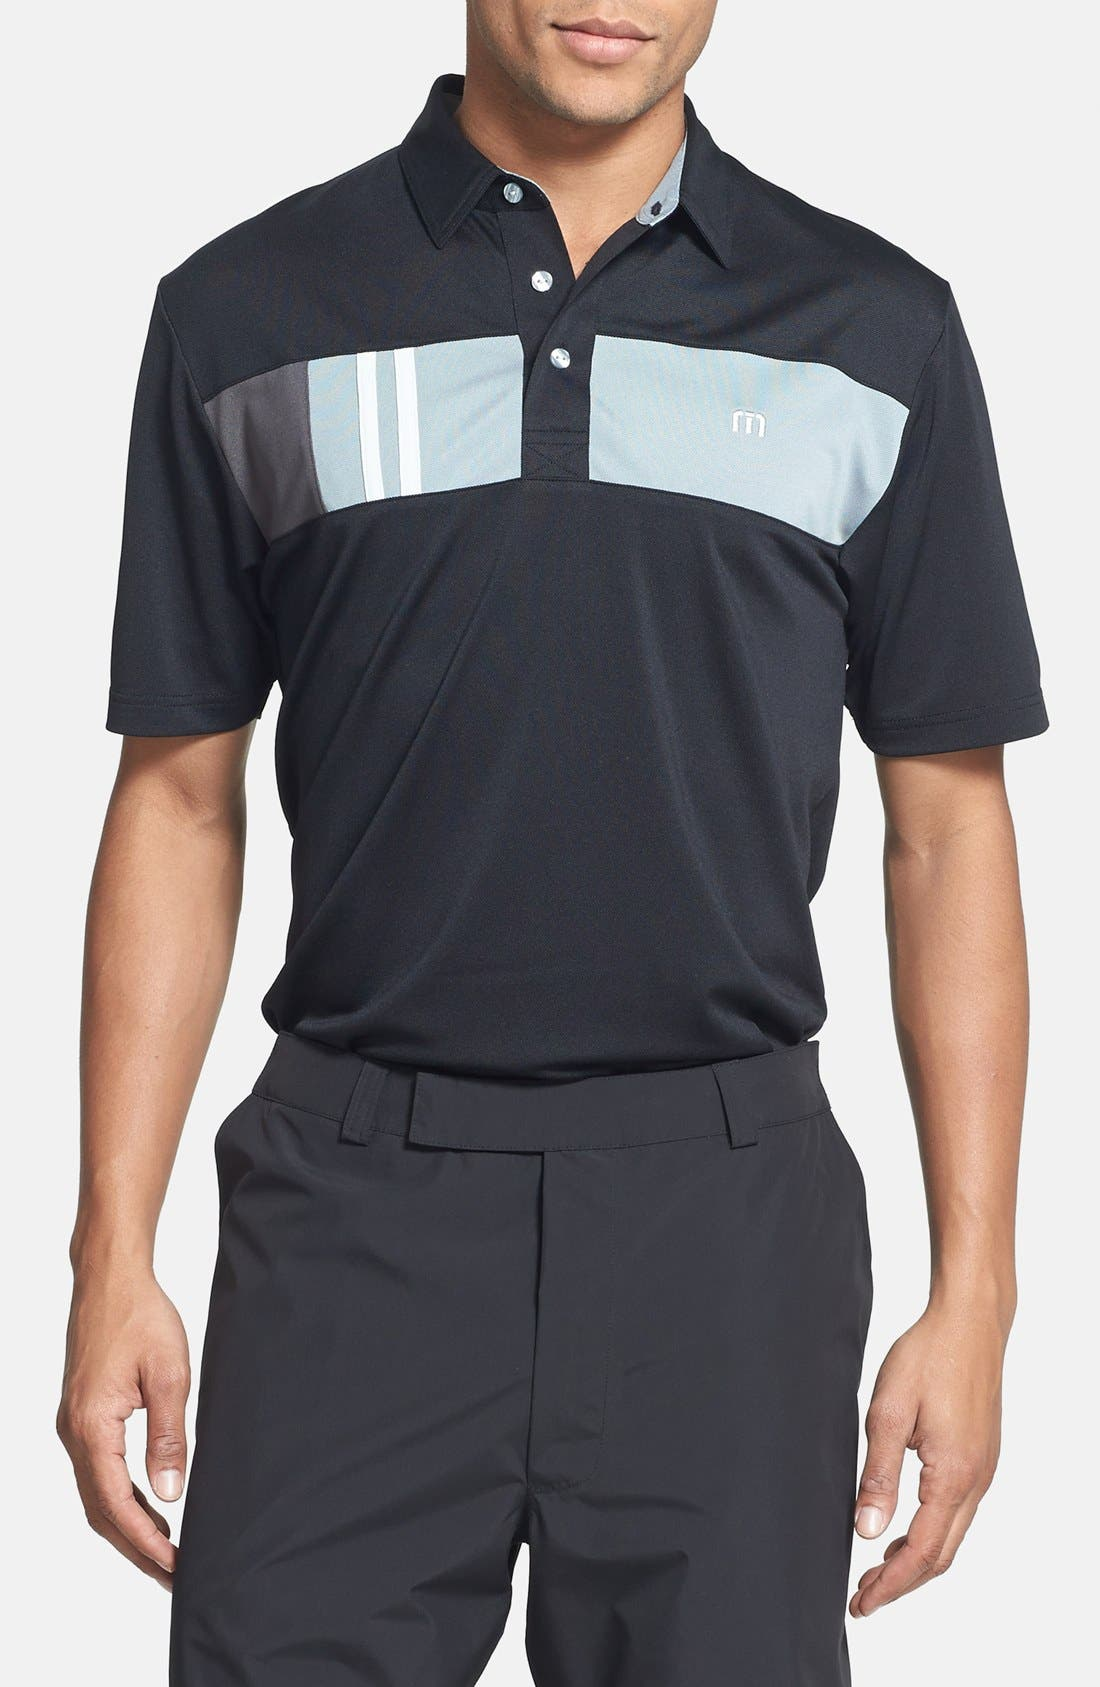 Alternate Image 1 Selected - Travis Mathew 'Kloss' Trim Fit Golf Polo